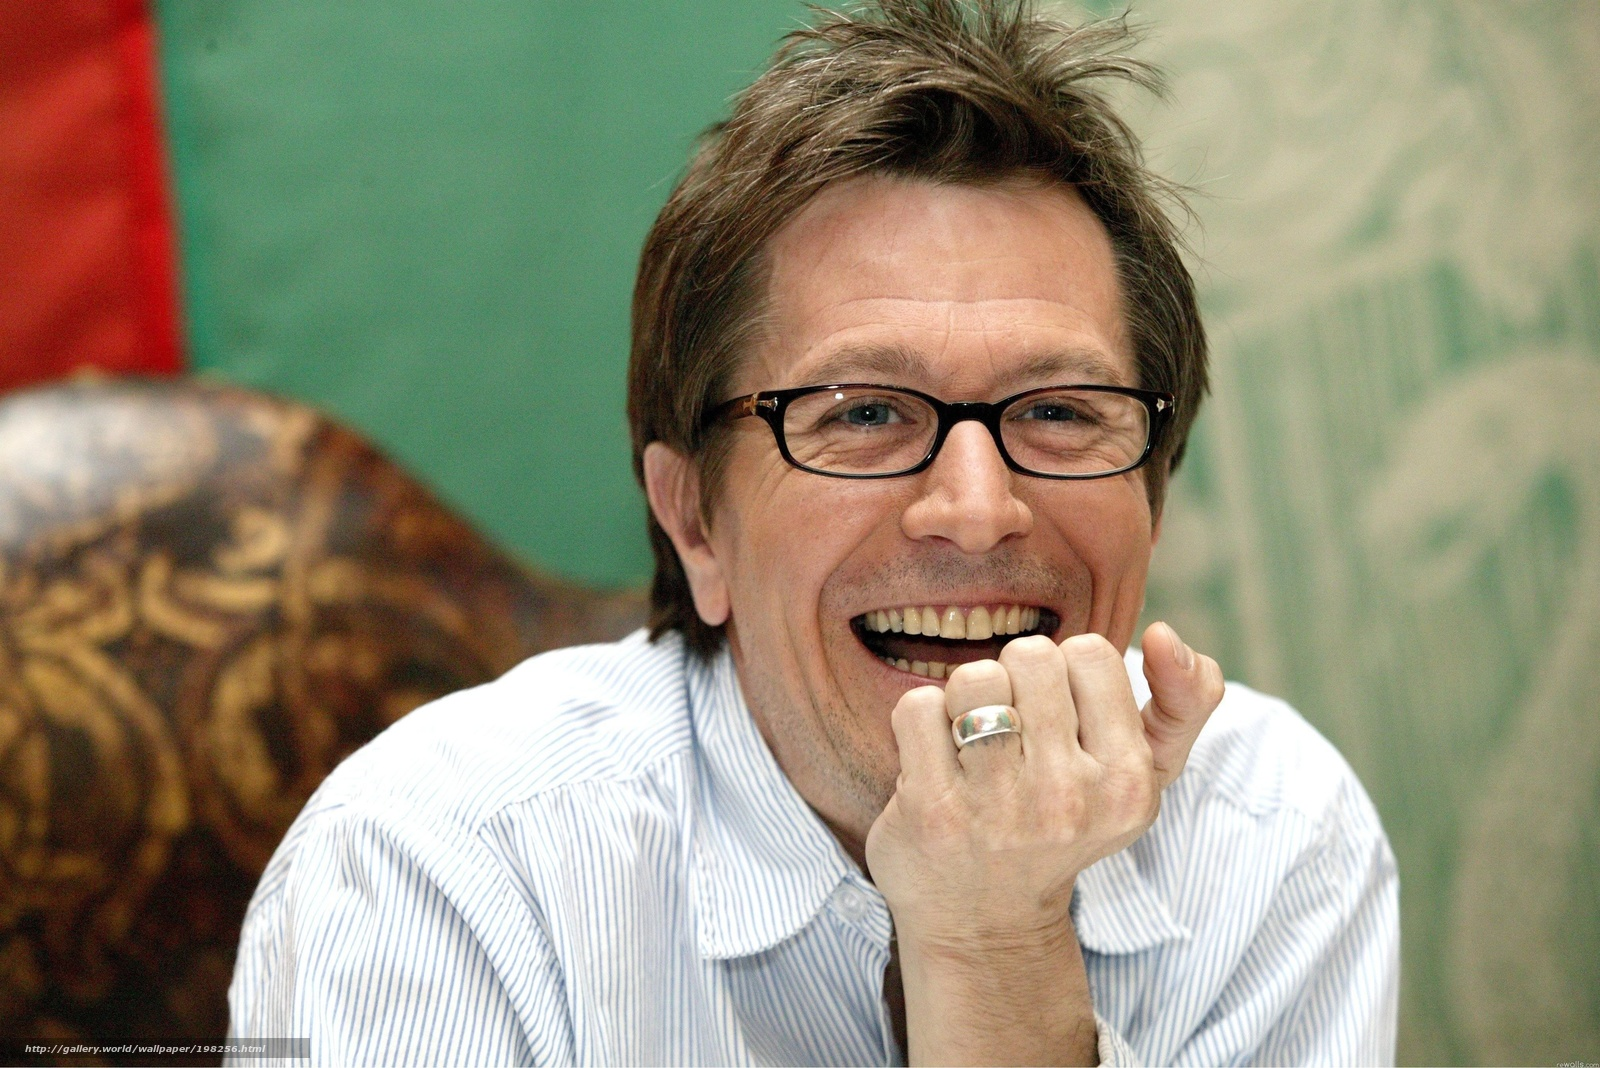 Find: Gary Oldman, actor